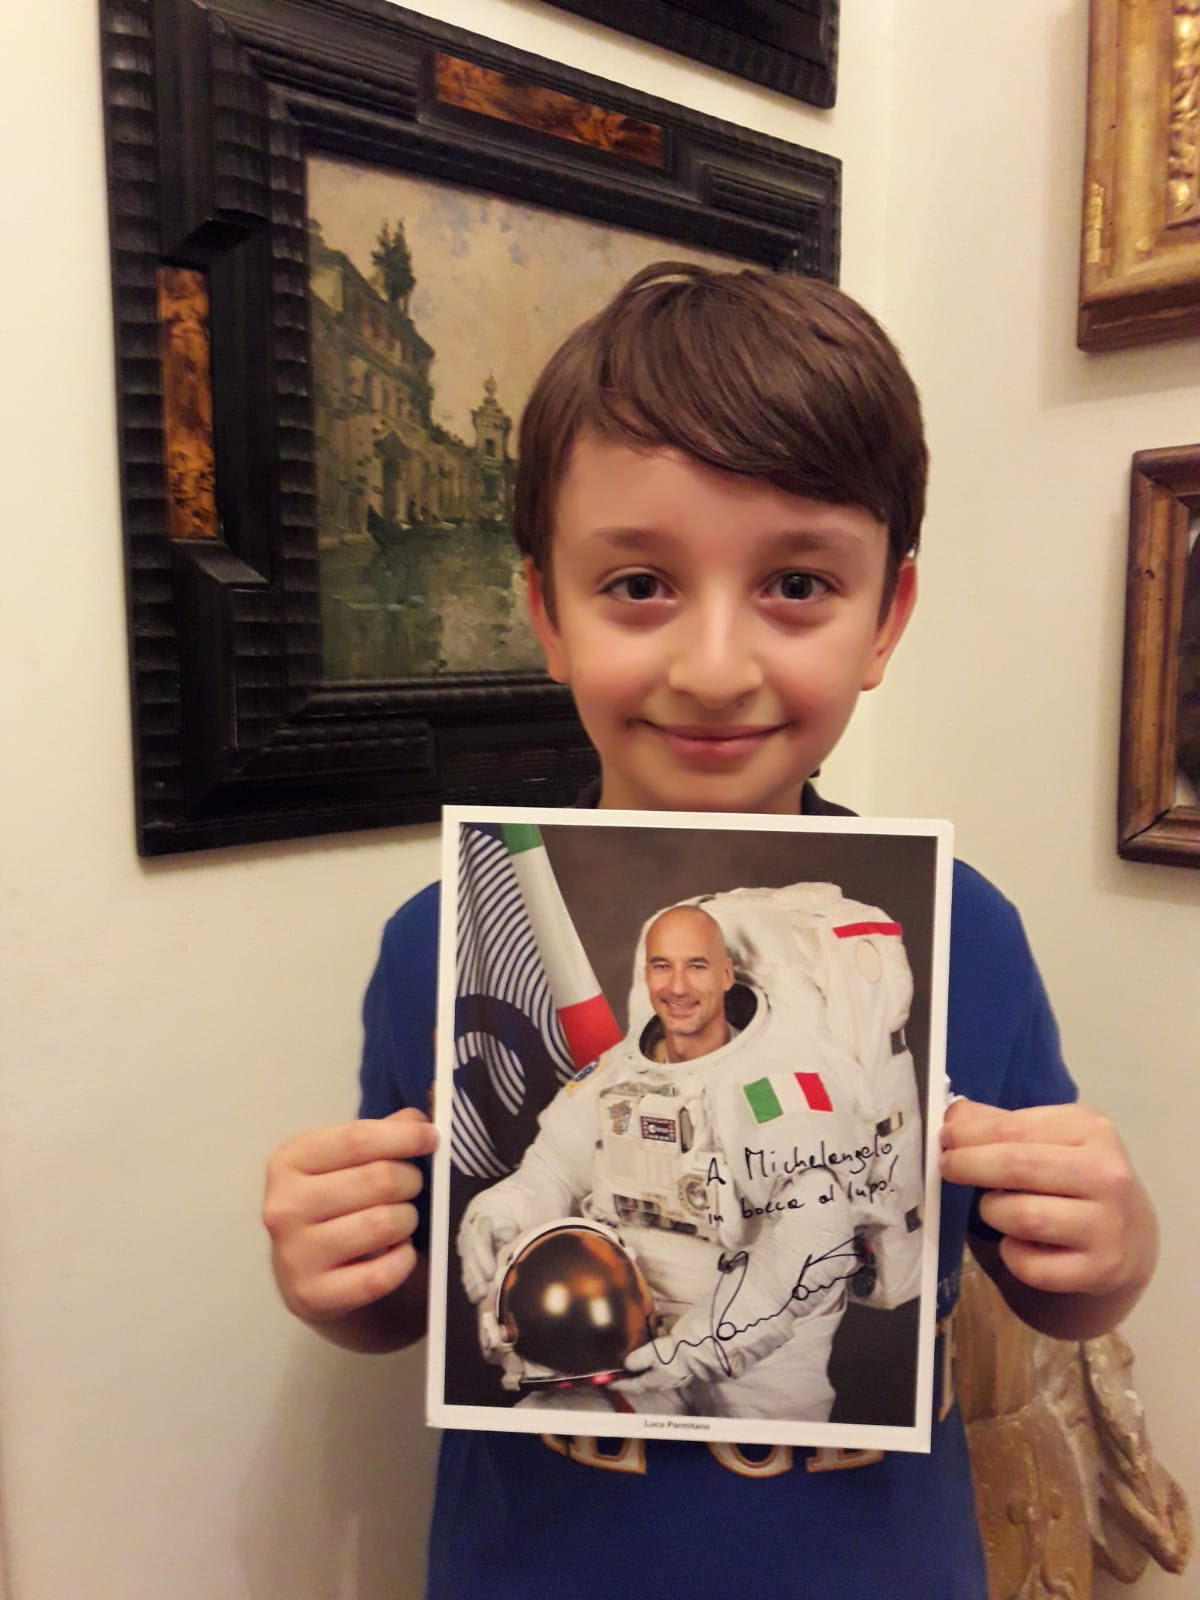 Michelangelo Cambiaghi, at home in Rome, holding his prized autographed photo of Italian astronaut Luca Parmitano.